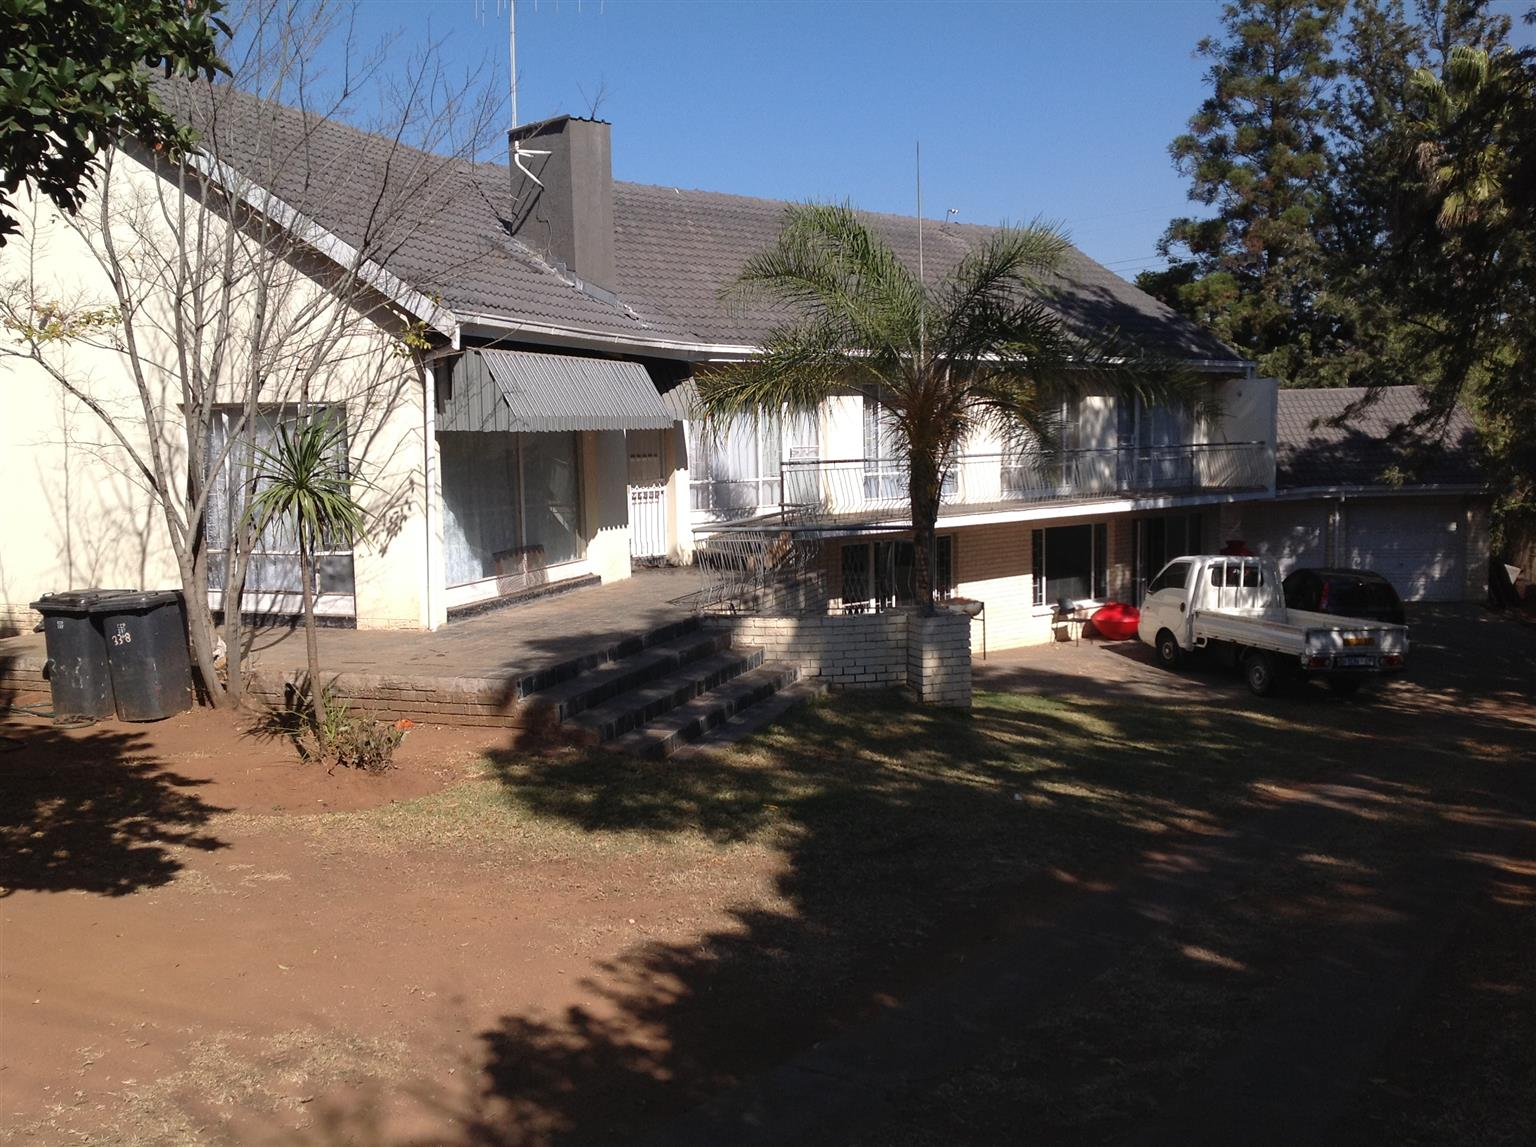 Waterkloof Ridge in Cliff Ave,6bed,4 bath house,95% renovated & LIVEABLE as is